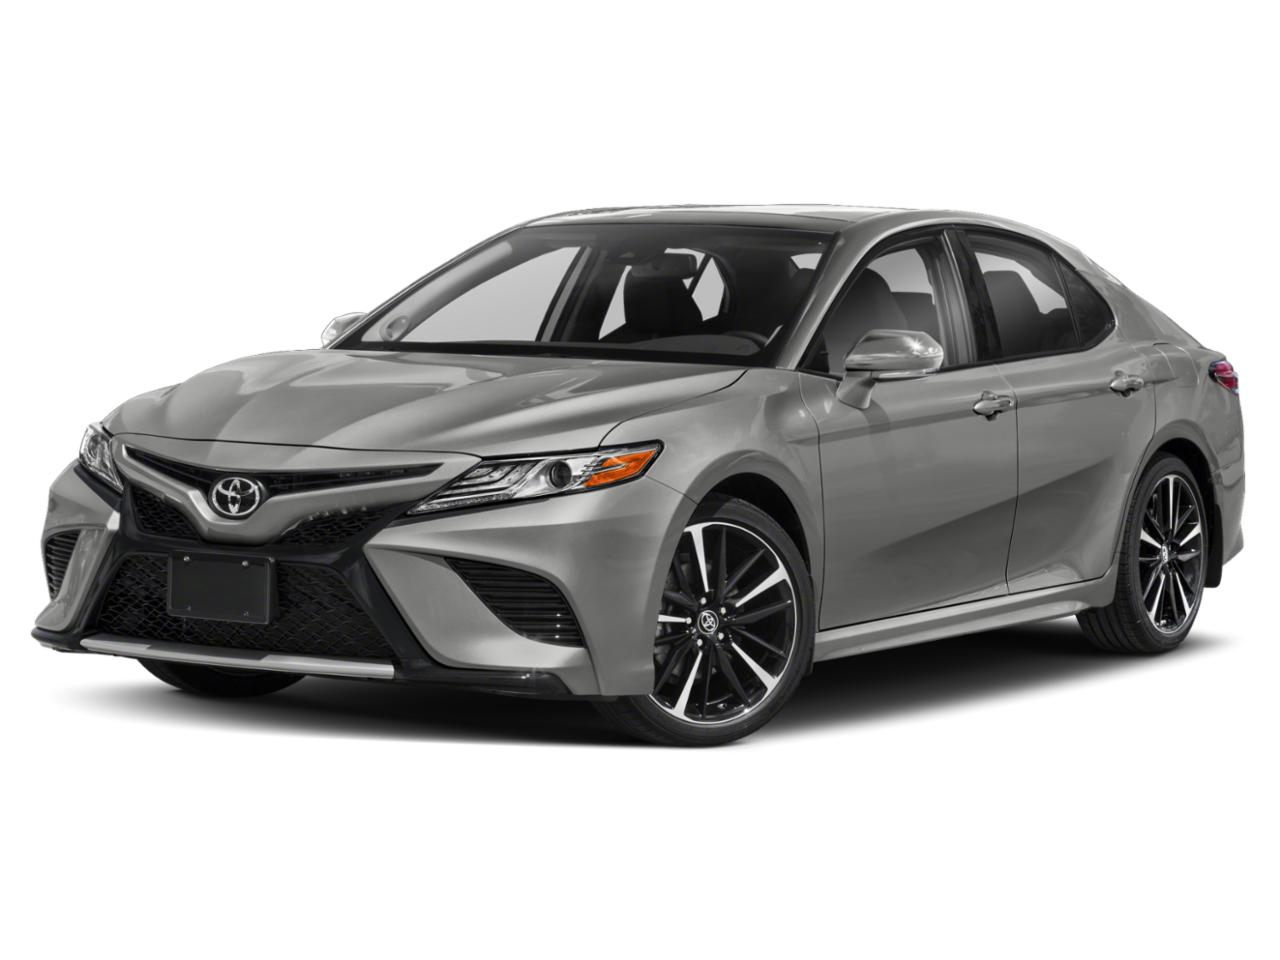 2019 Toyota Camry Vehicle Photo in Broussard, LA 70518